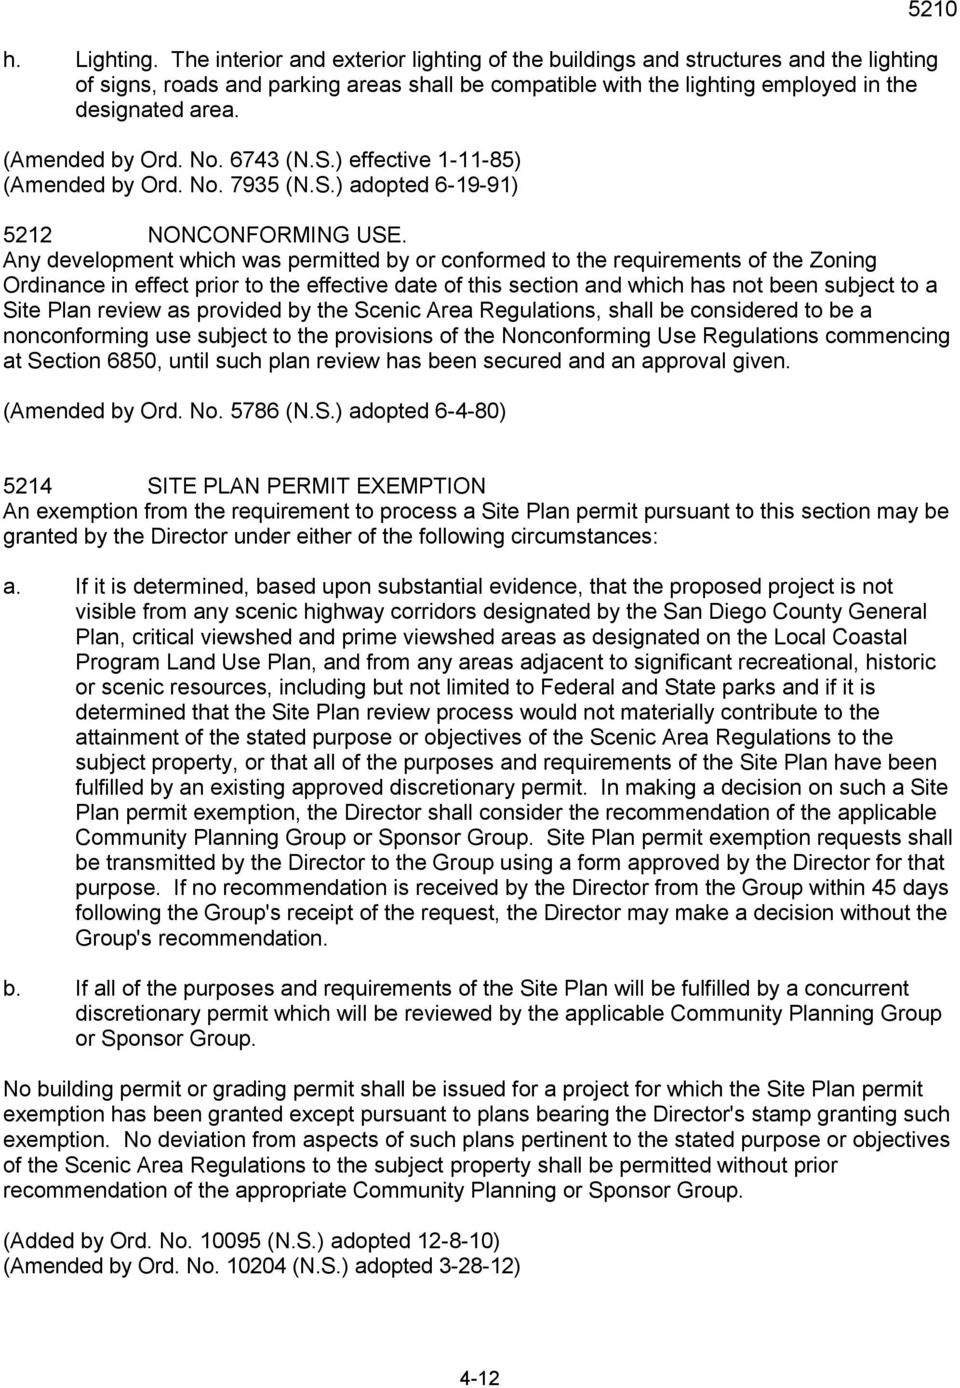 (Amended by Ord. No. 6743 (N.S.) effective 1-11-85) (Amended by Ord. No. 7935 (N.S.) adopted 6-19-91) 5212 NONCONFORMING USE.